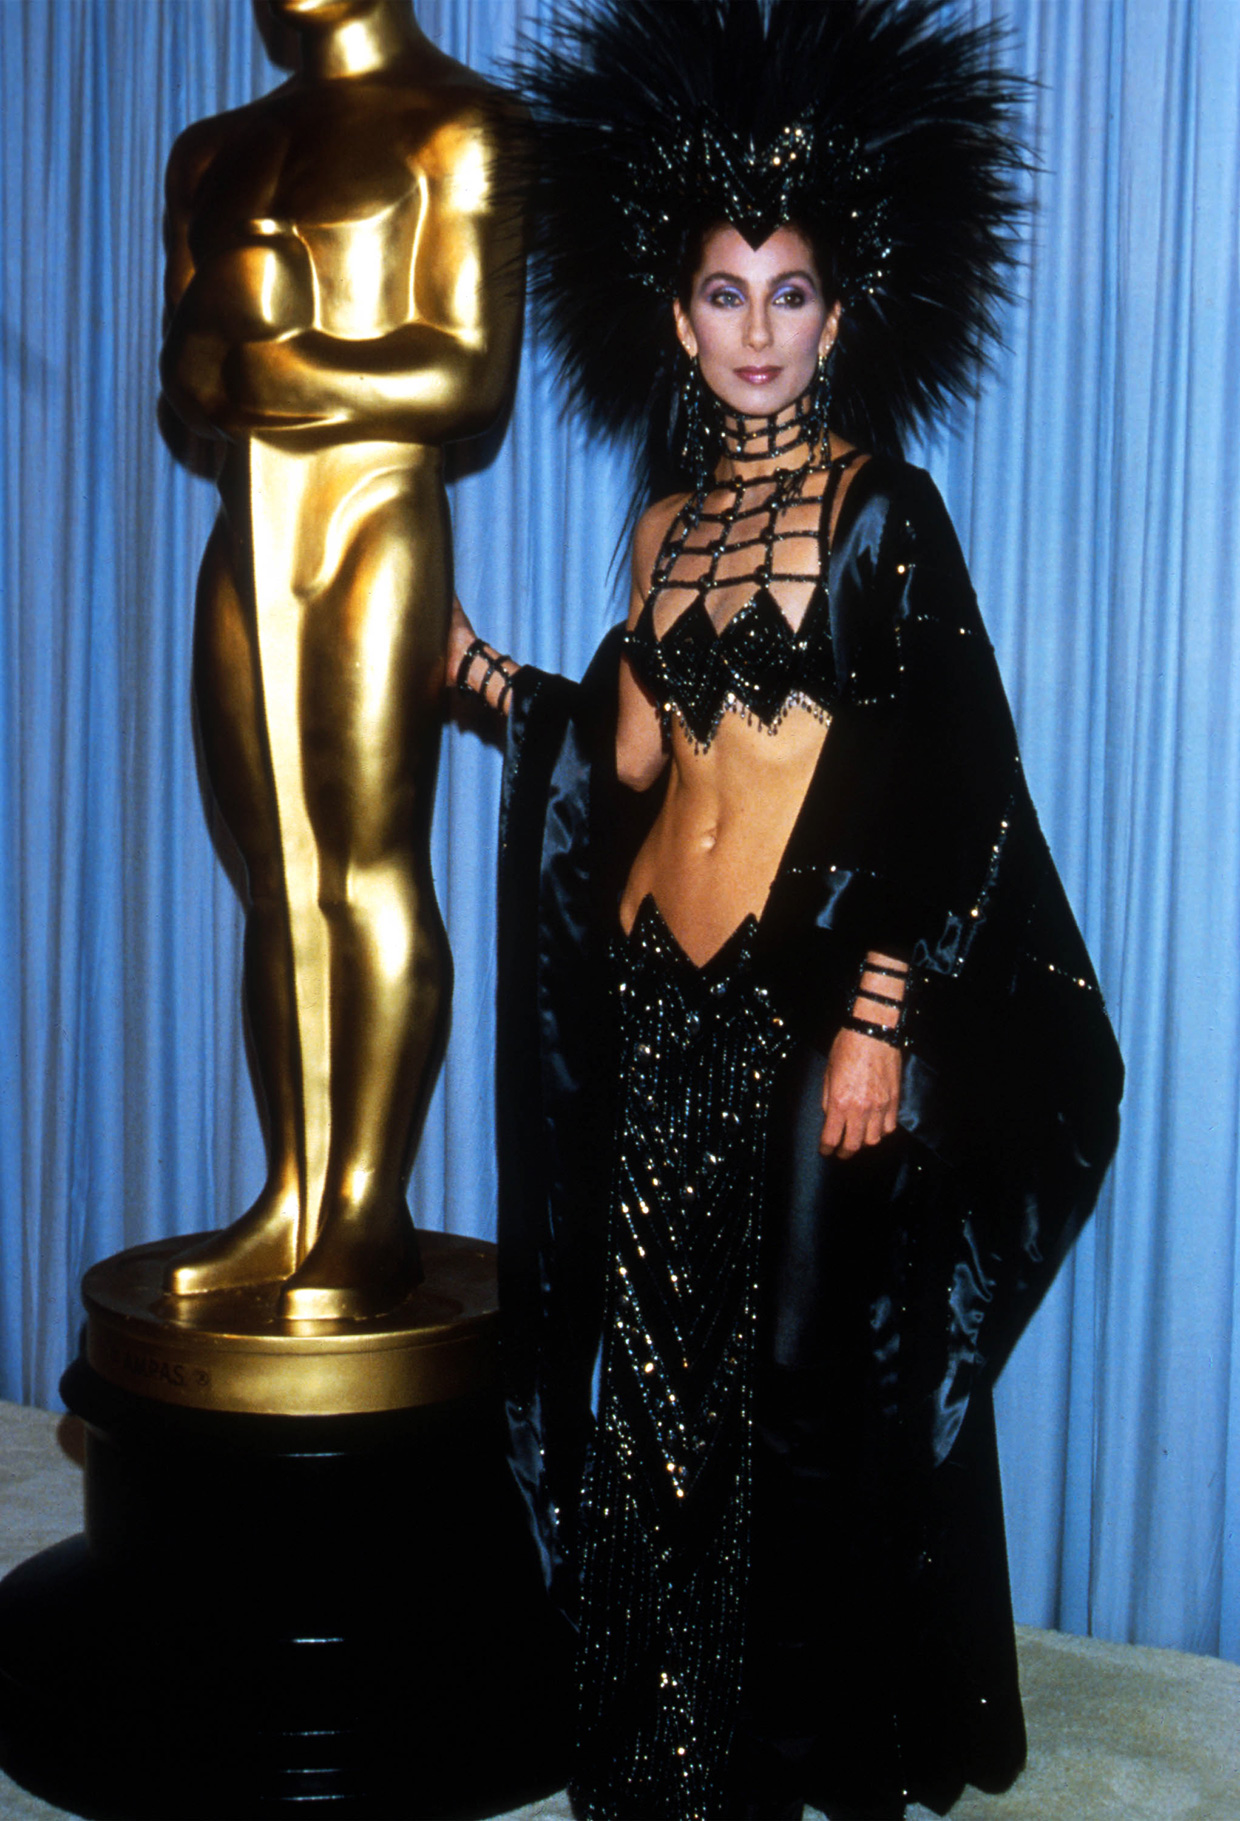 Julian Wasser/Liaison  Cher attends the Academy Awards March 24, 1986 in Los Angeles.